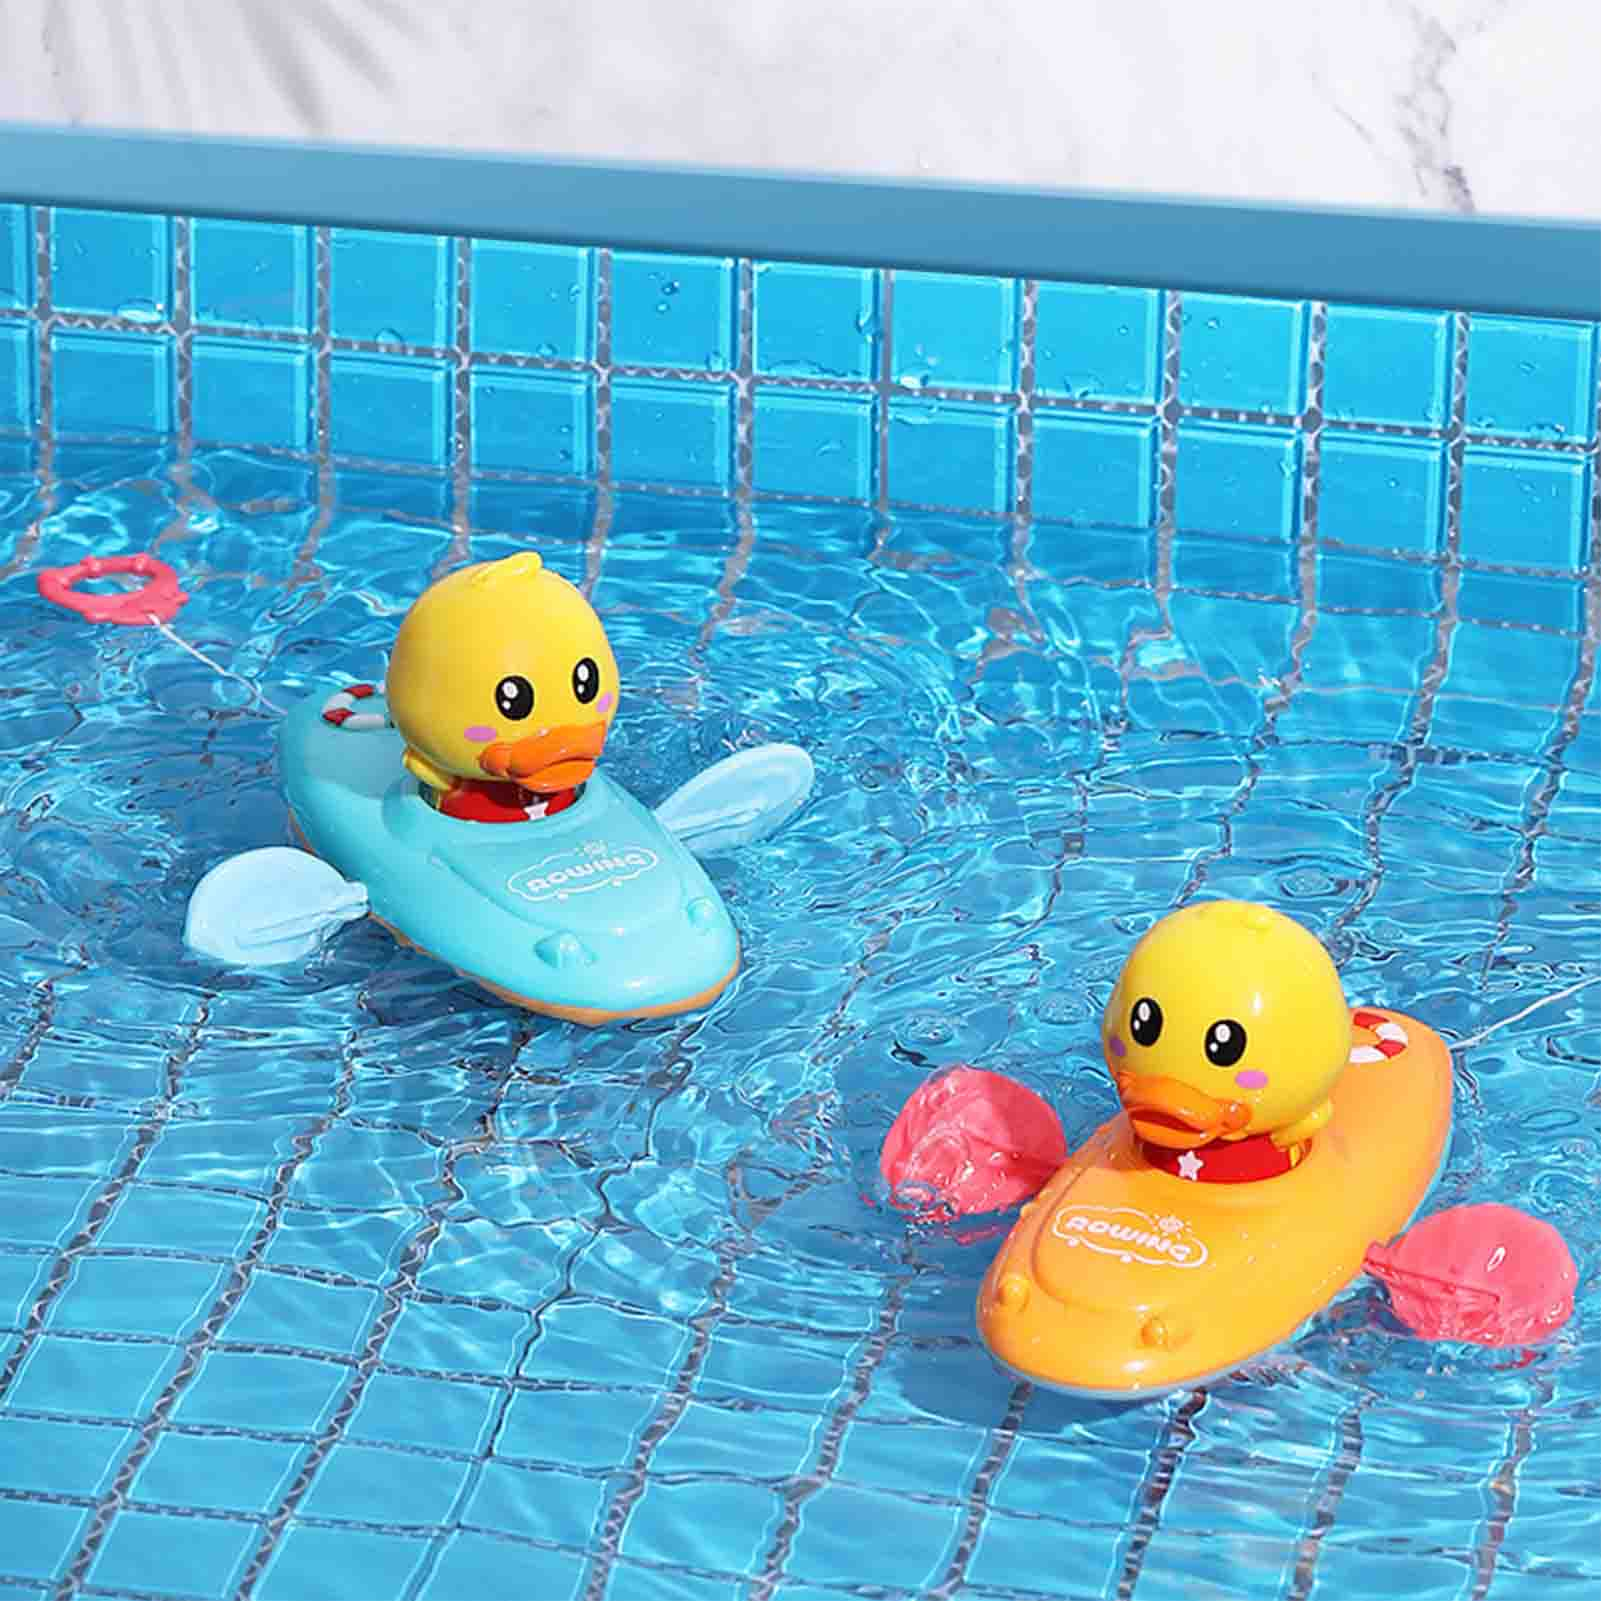 Baby Swimming Pool Shower Bath Toys Cute Rowing Duck Wind Up Chain Bathing Clockwork Bathroom Game Water Beach Toys For Kids baby bath toys duck clockwork educational toys swim bathing kids water swimming chain shower toy gift for newborn baby wholesale